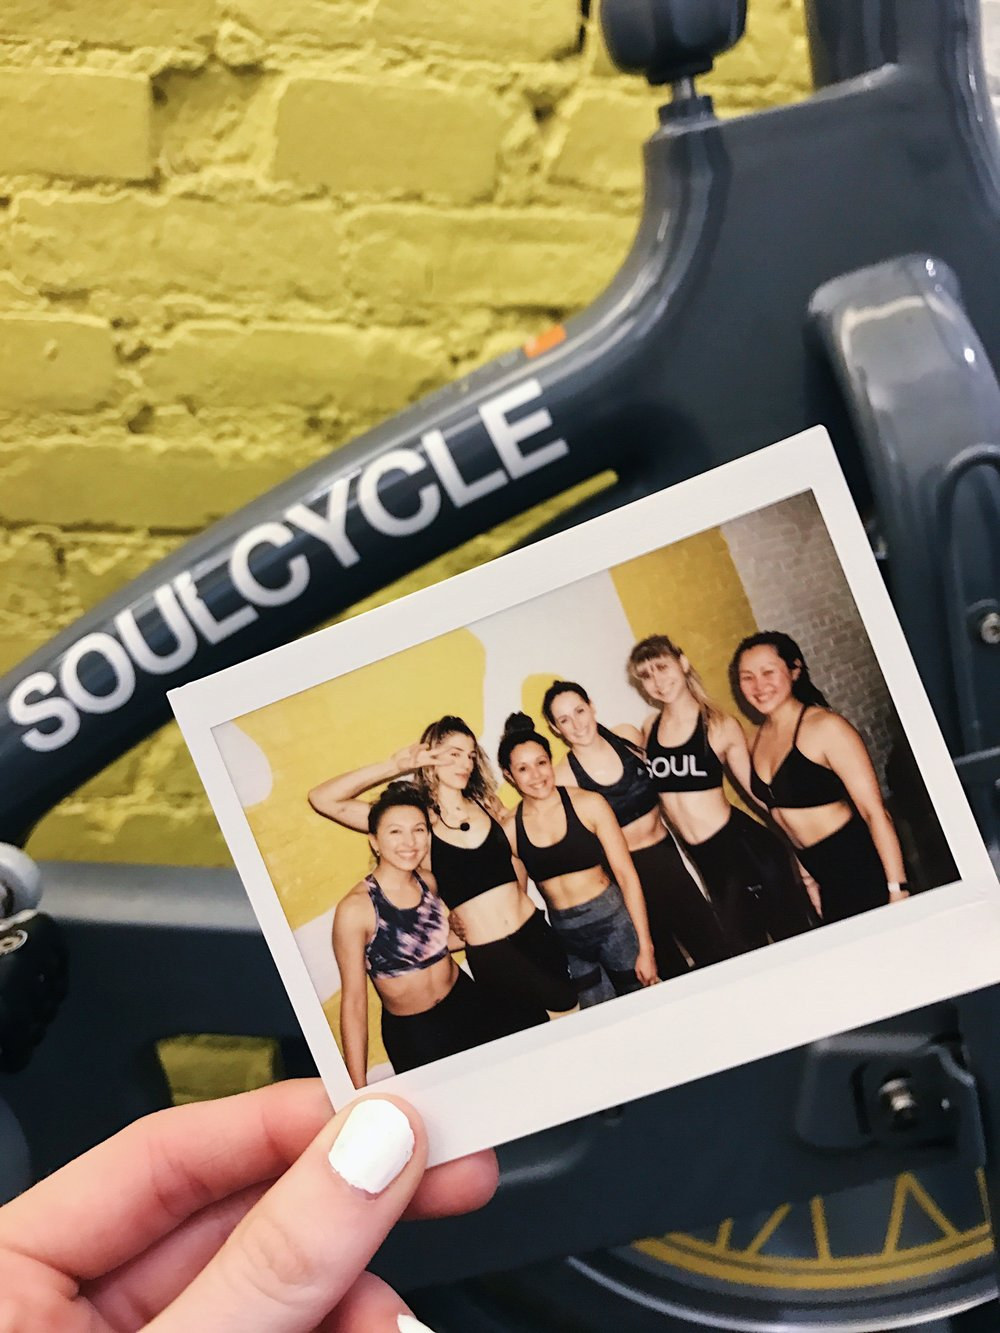 Copy of More Soul with Ash, Cindy, Jera, Casey and Michelle